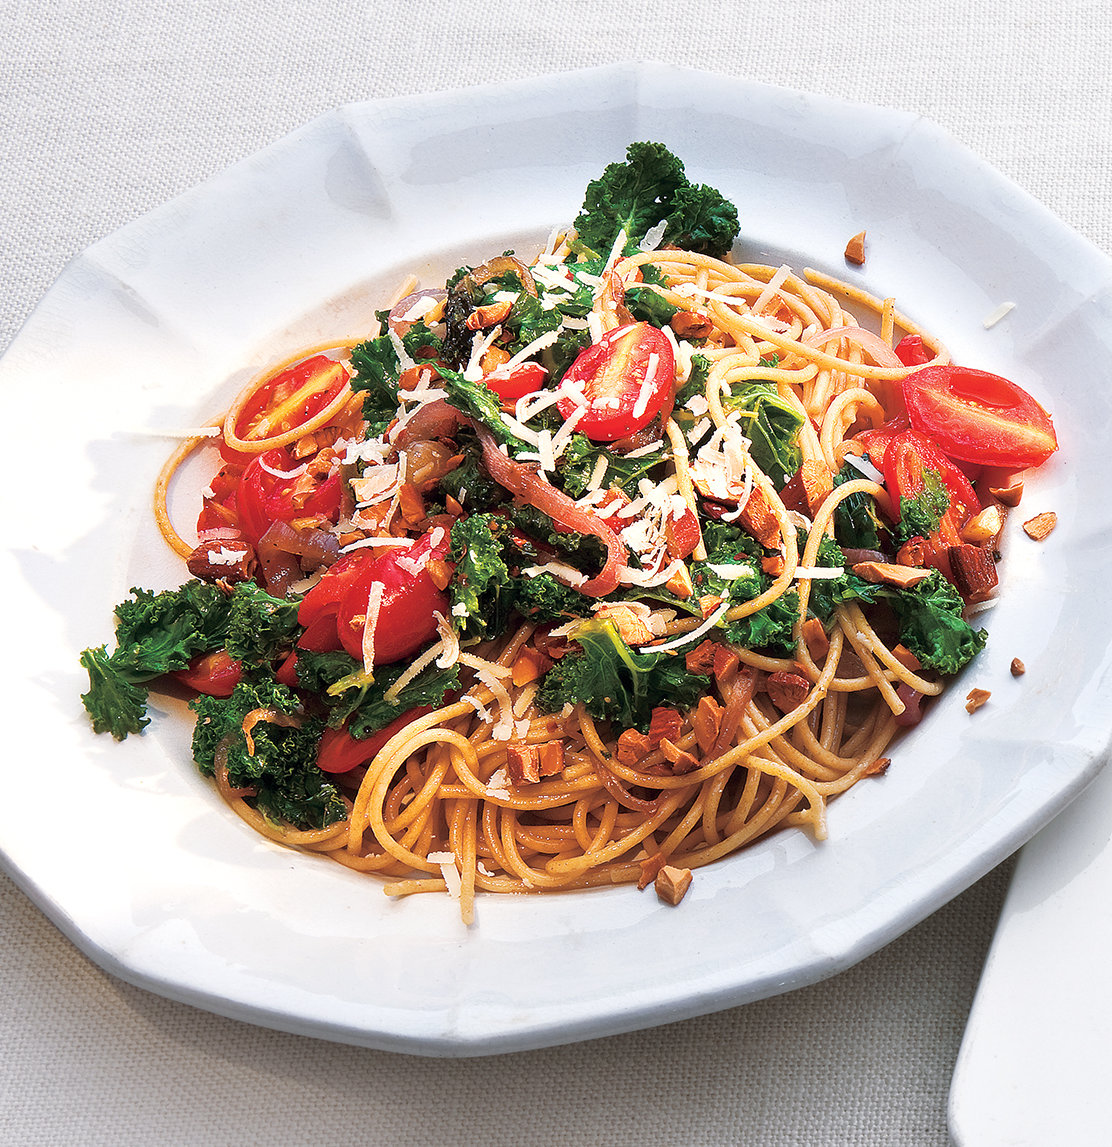 Easy Dinner Ideas: Whole-Grain Spaghetti With Garlicky Kale and Tomatoes